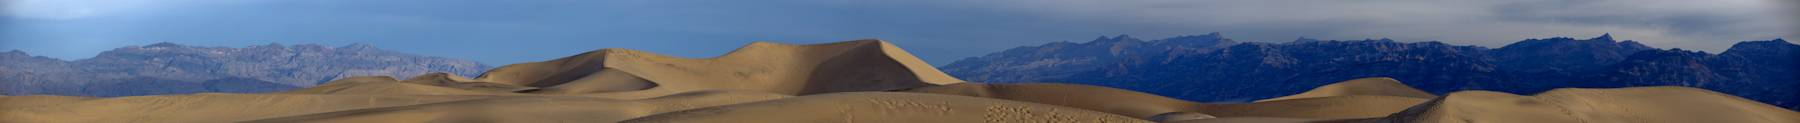 11_1death_valley_dunes_huge.jpg